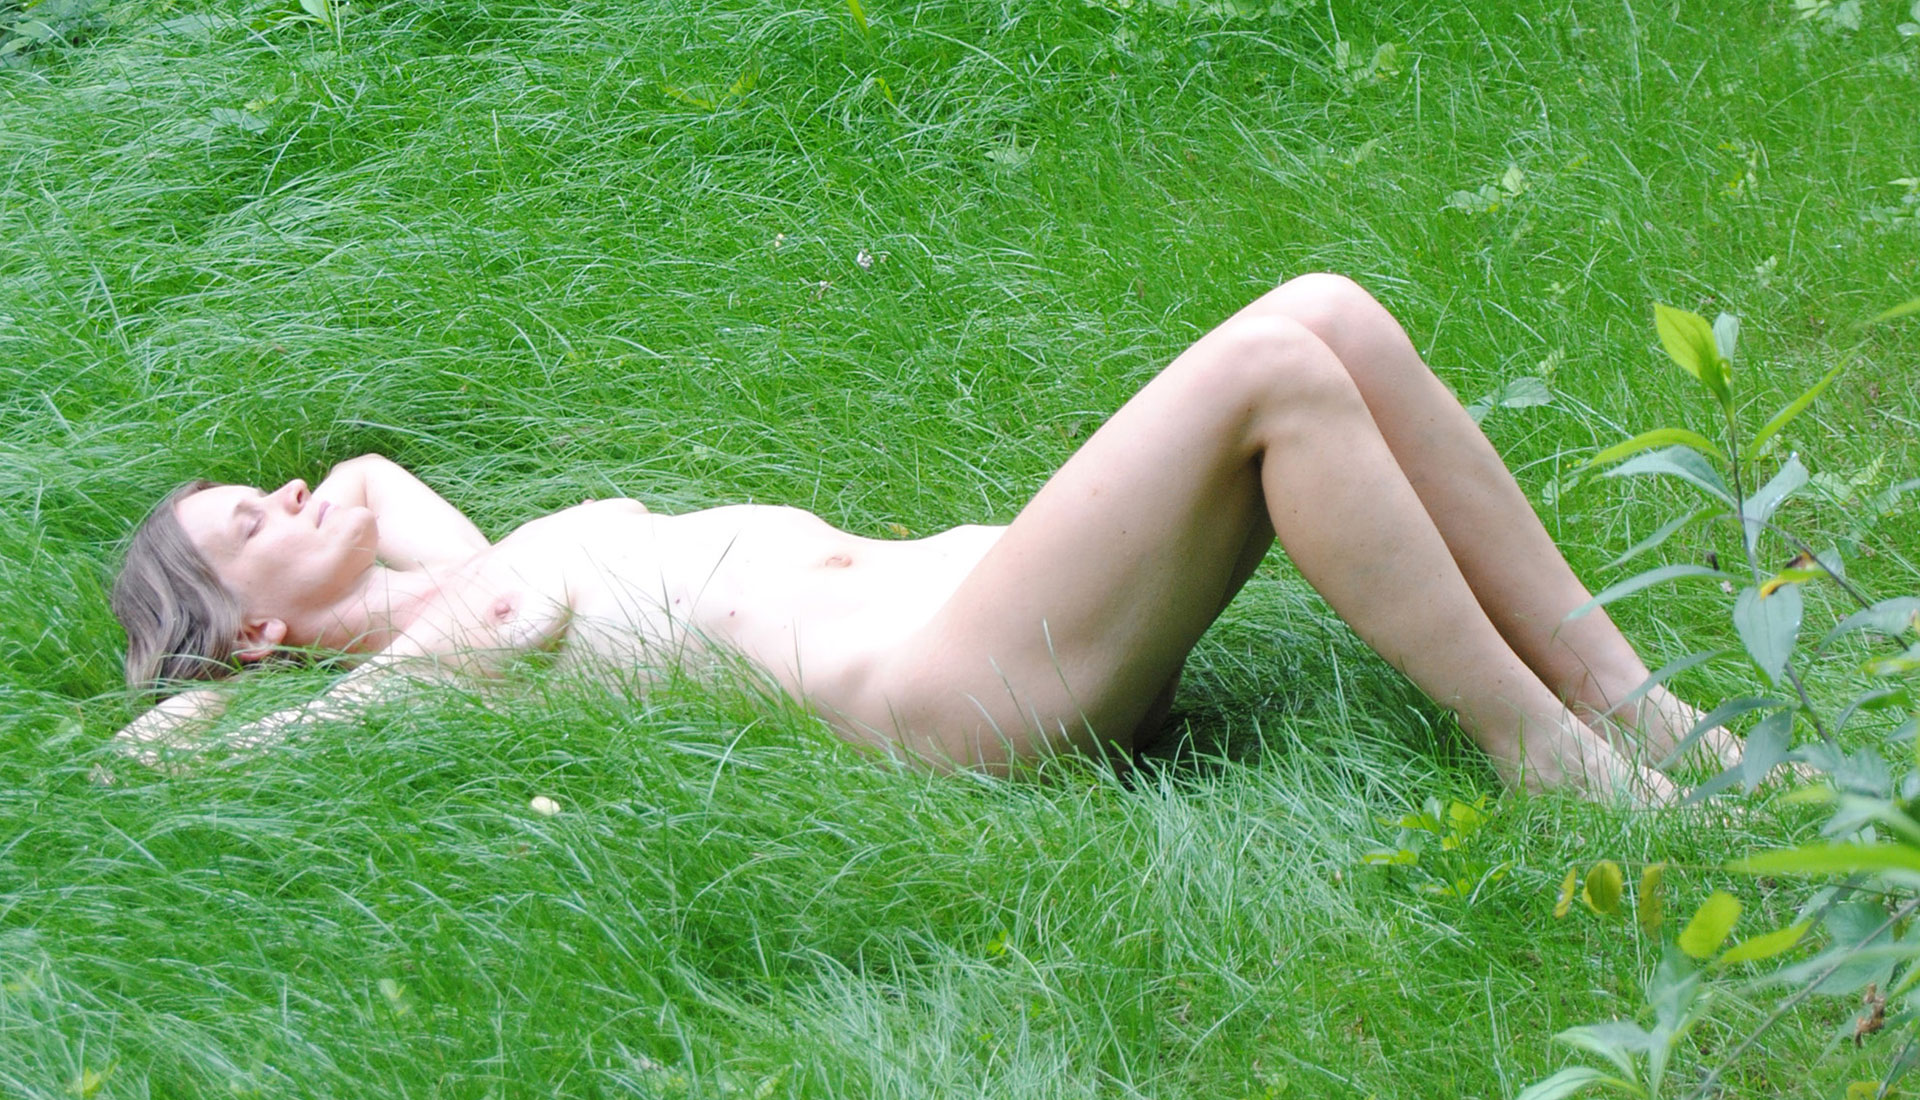 Relax in the nature … caressed by the grass